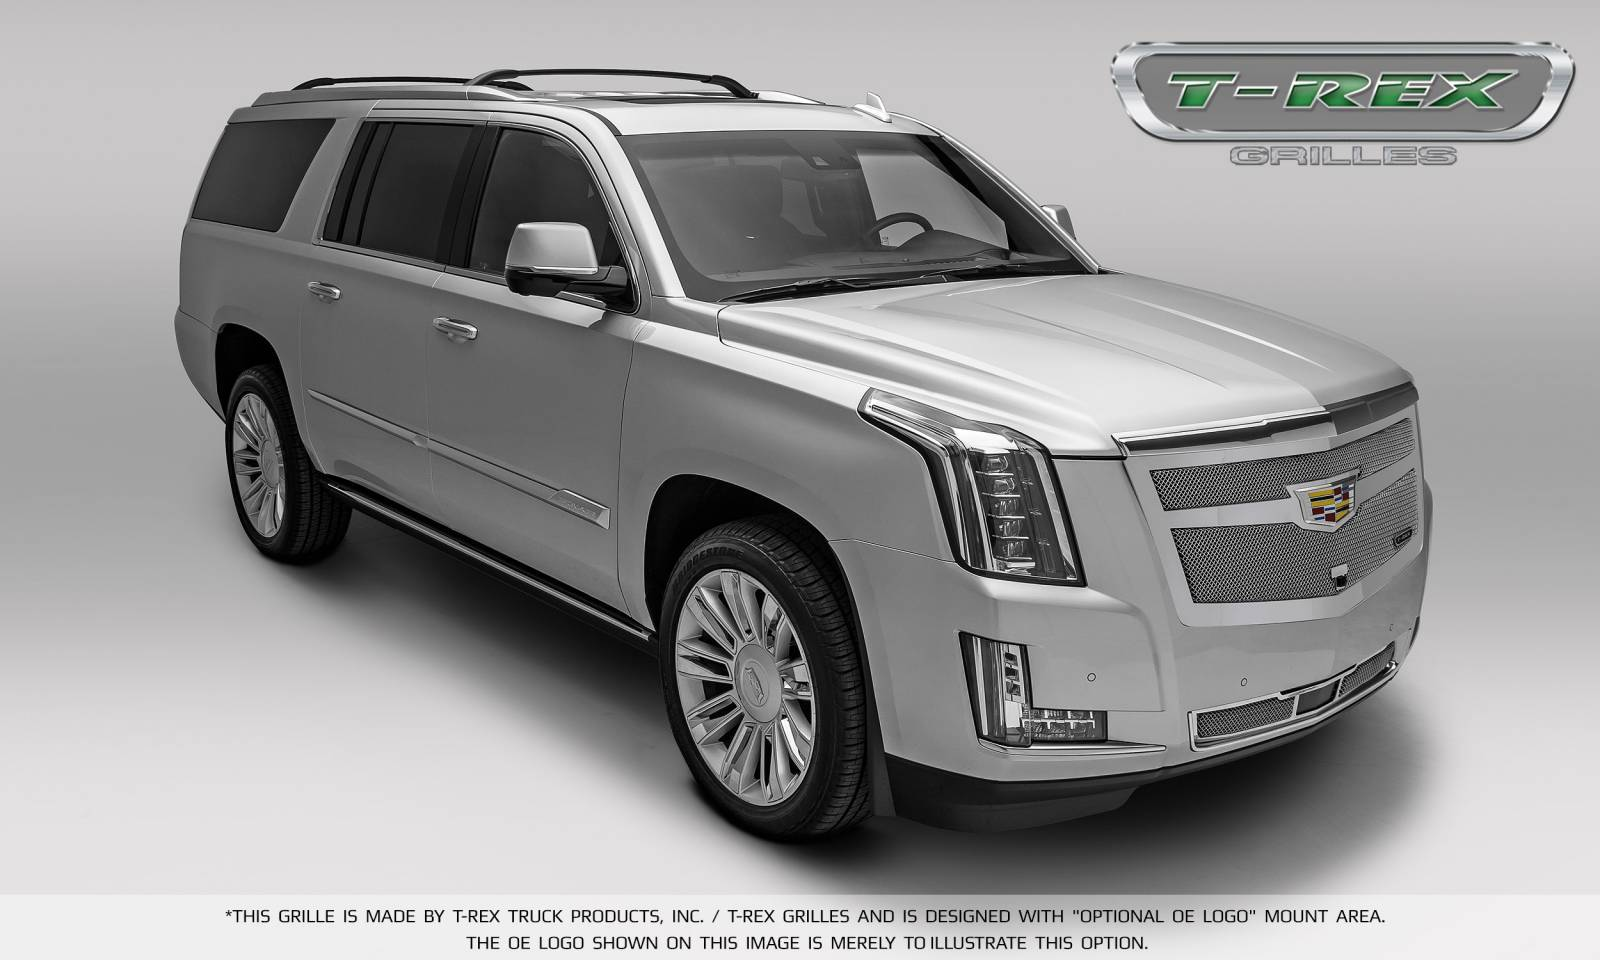 T rex cadillac escalade upper class bumper grille overlay for vehicles with adaptive cc chrome plated polished pt 57189